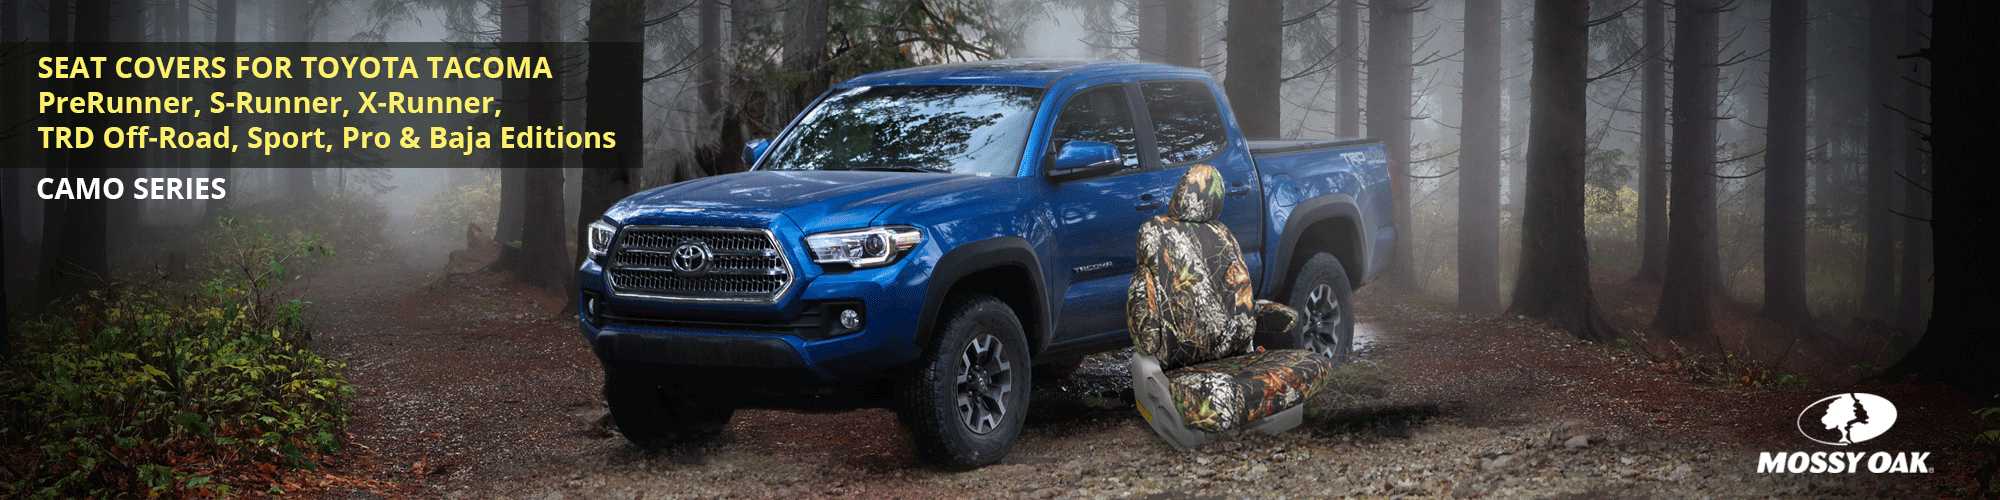 Toyota Tacoma Custom Seat Covers